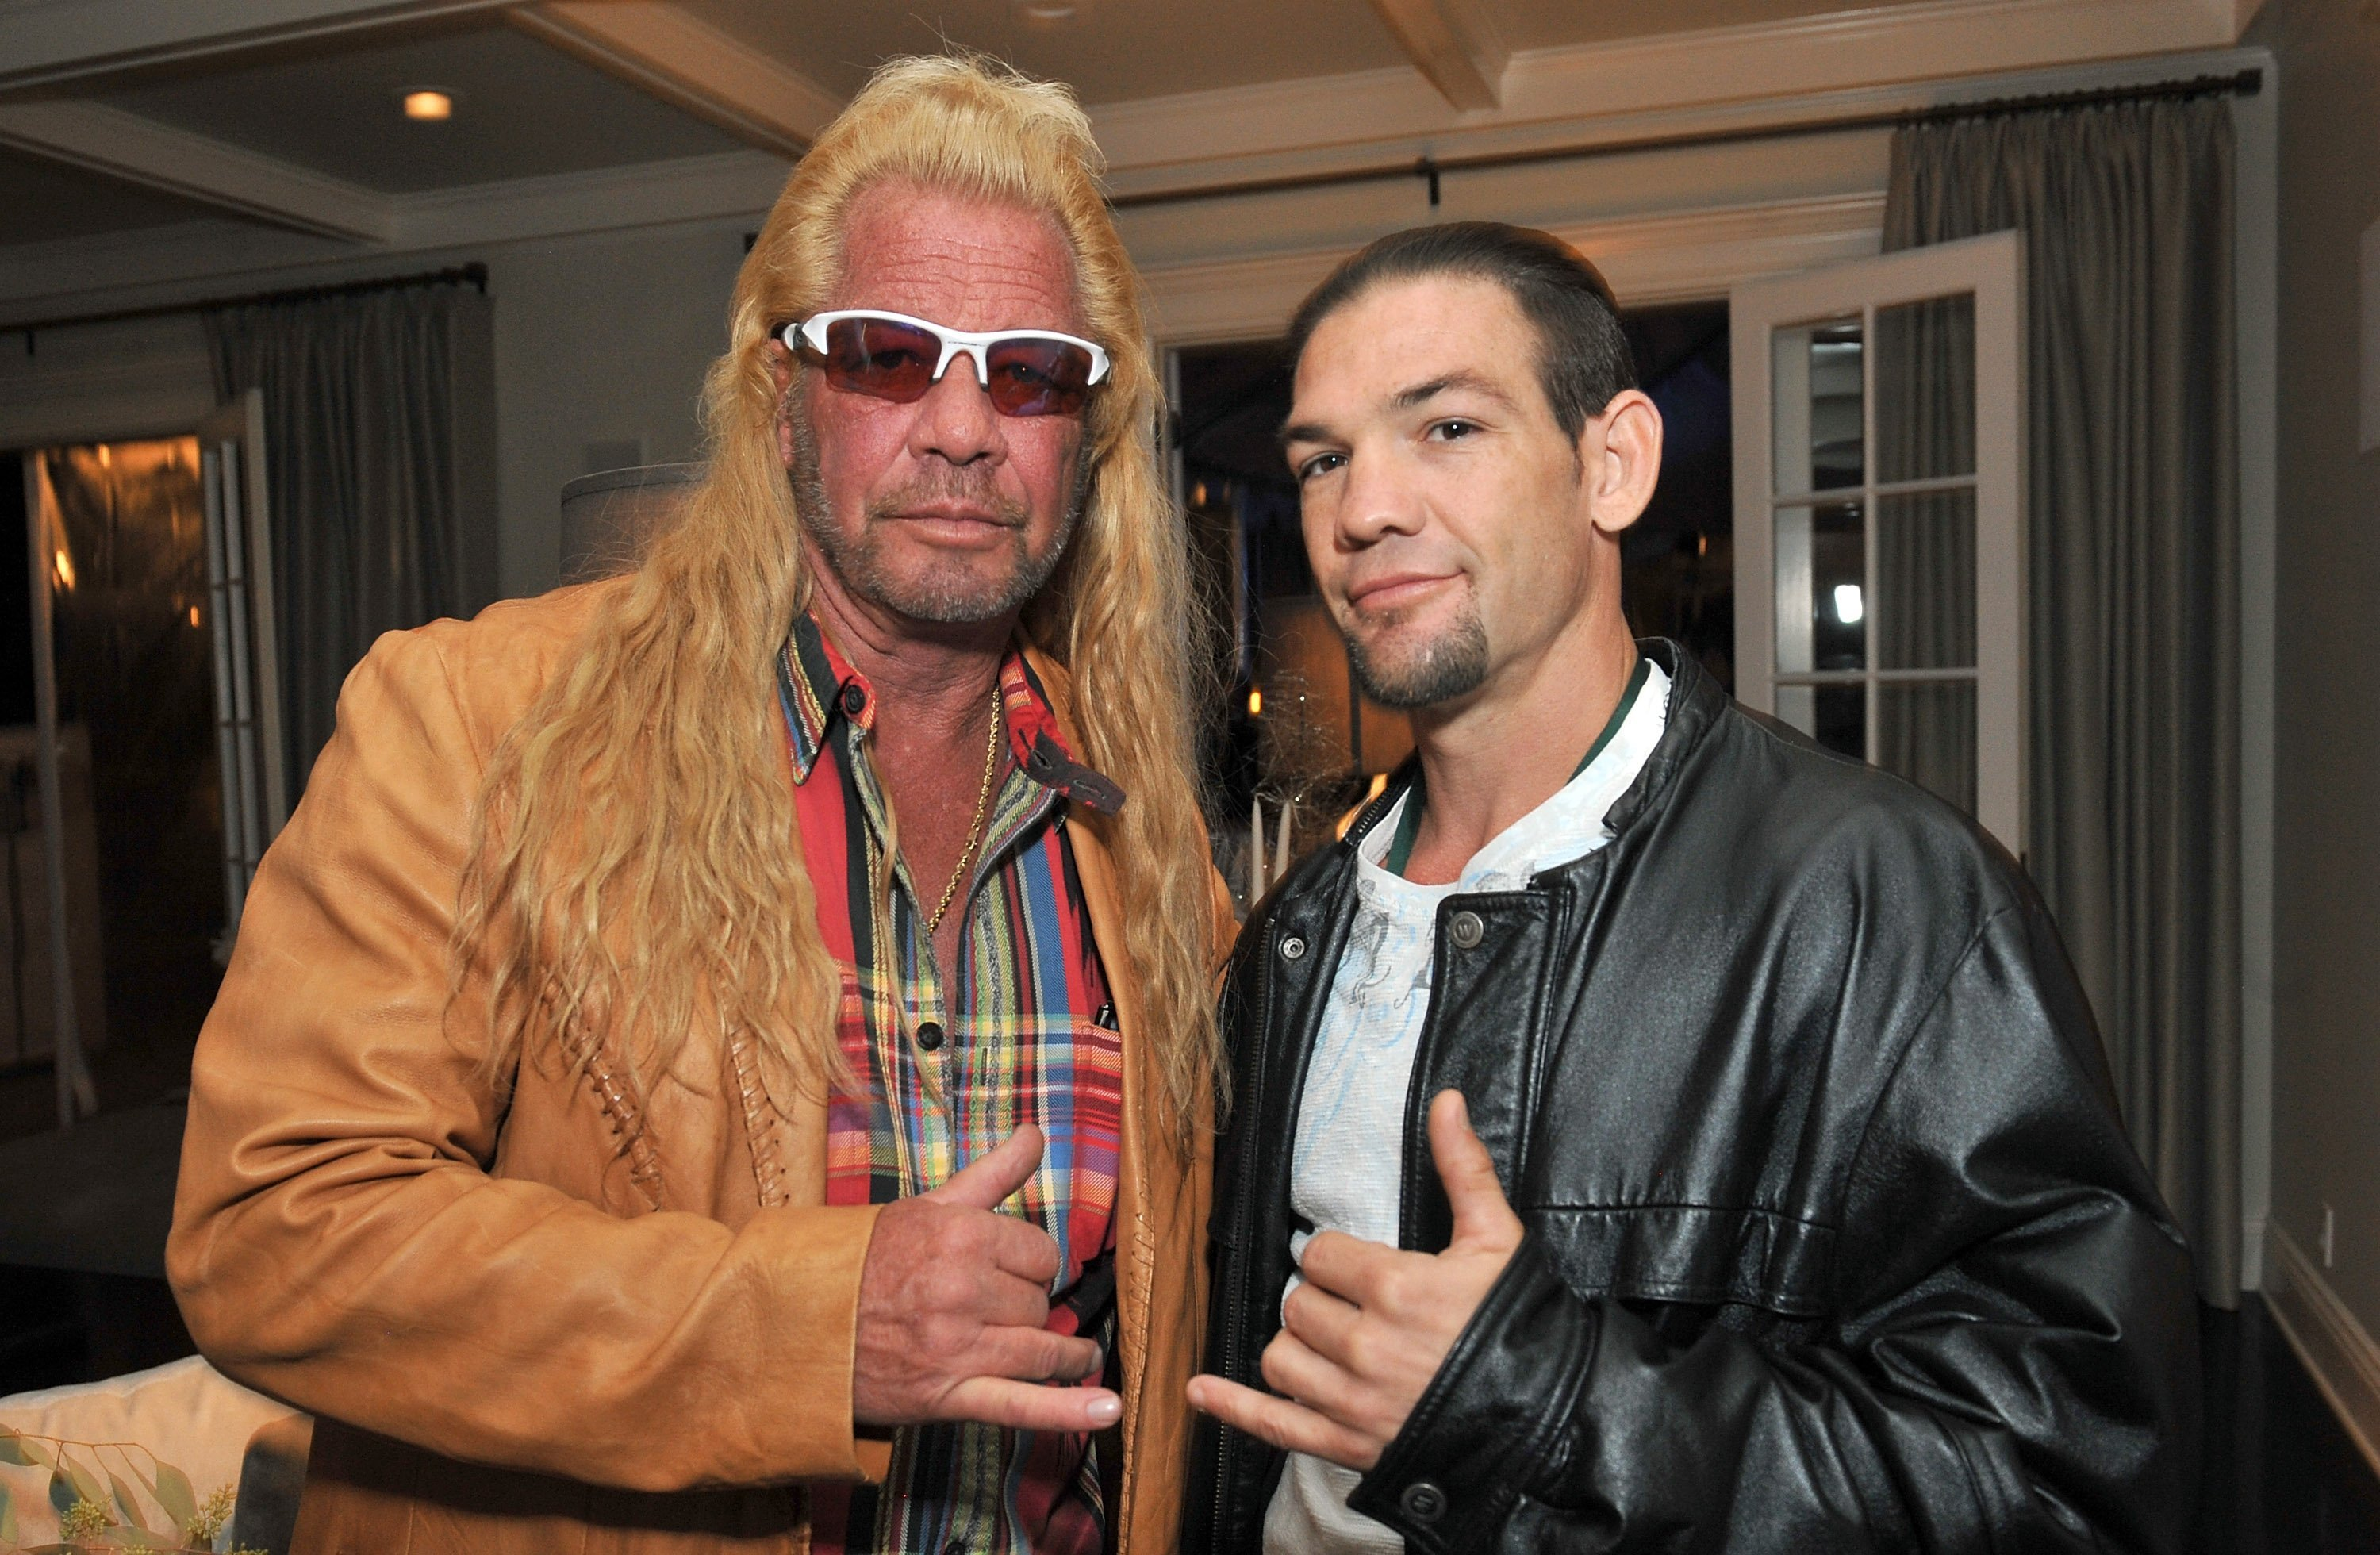 Duane Chapman and son Leland Chapman attend the Electus & College Humor Holiday Party in Los Angeles, California on December 12, 2013 | Photo: Getty Images